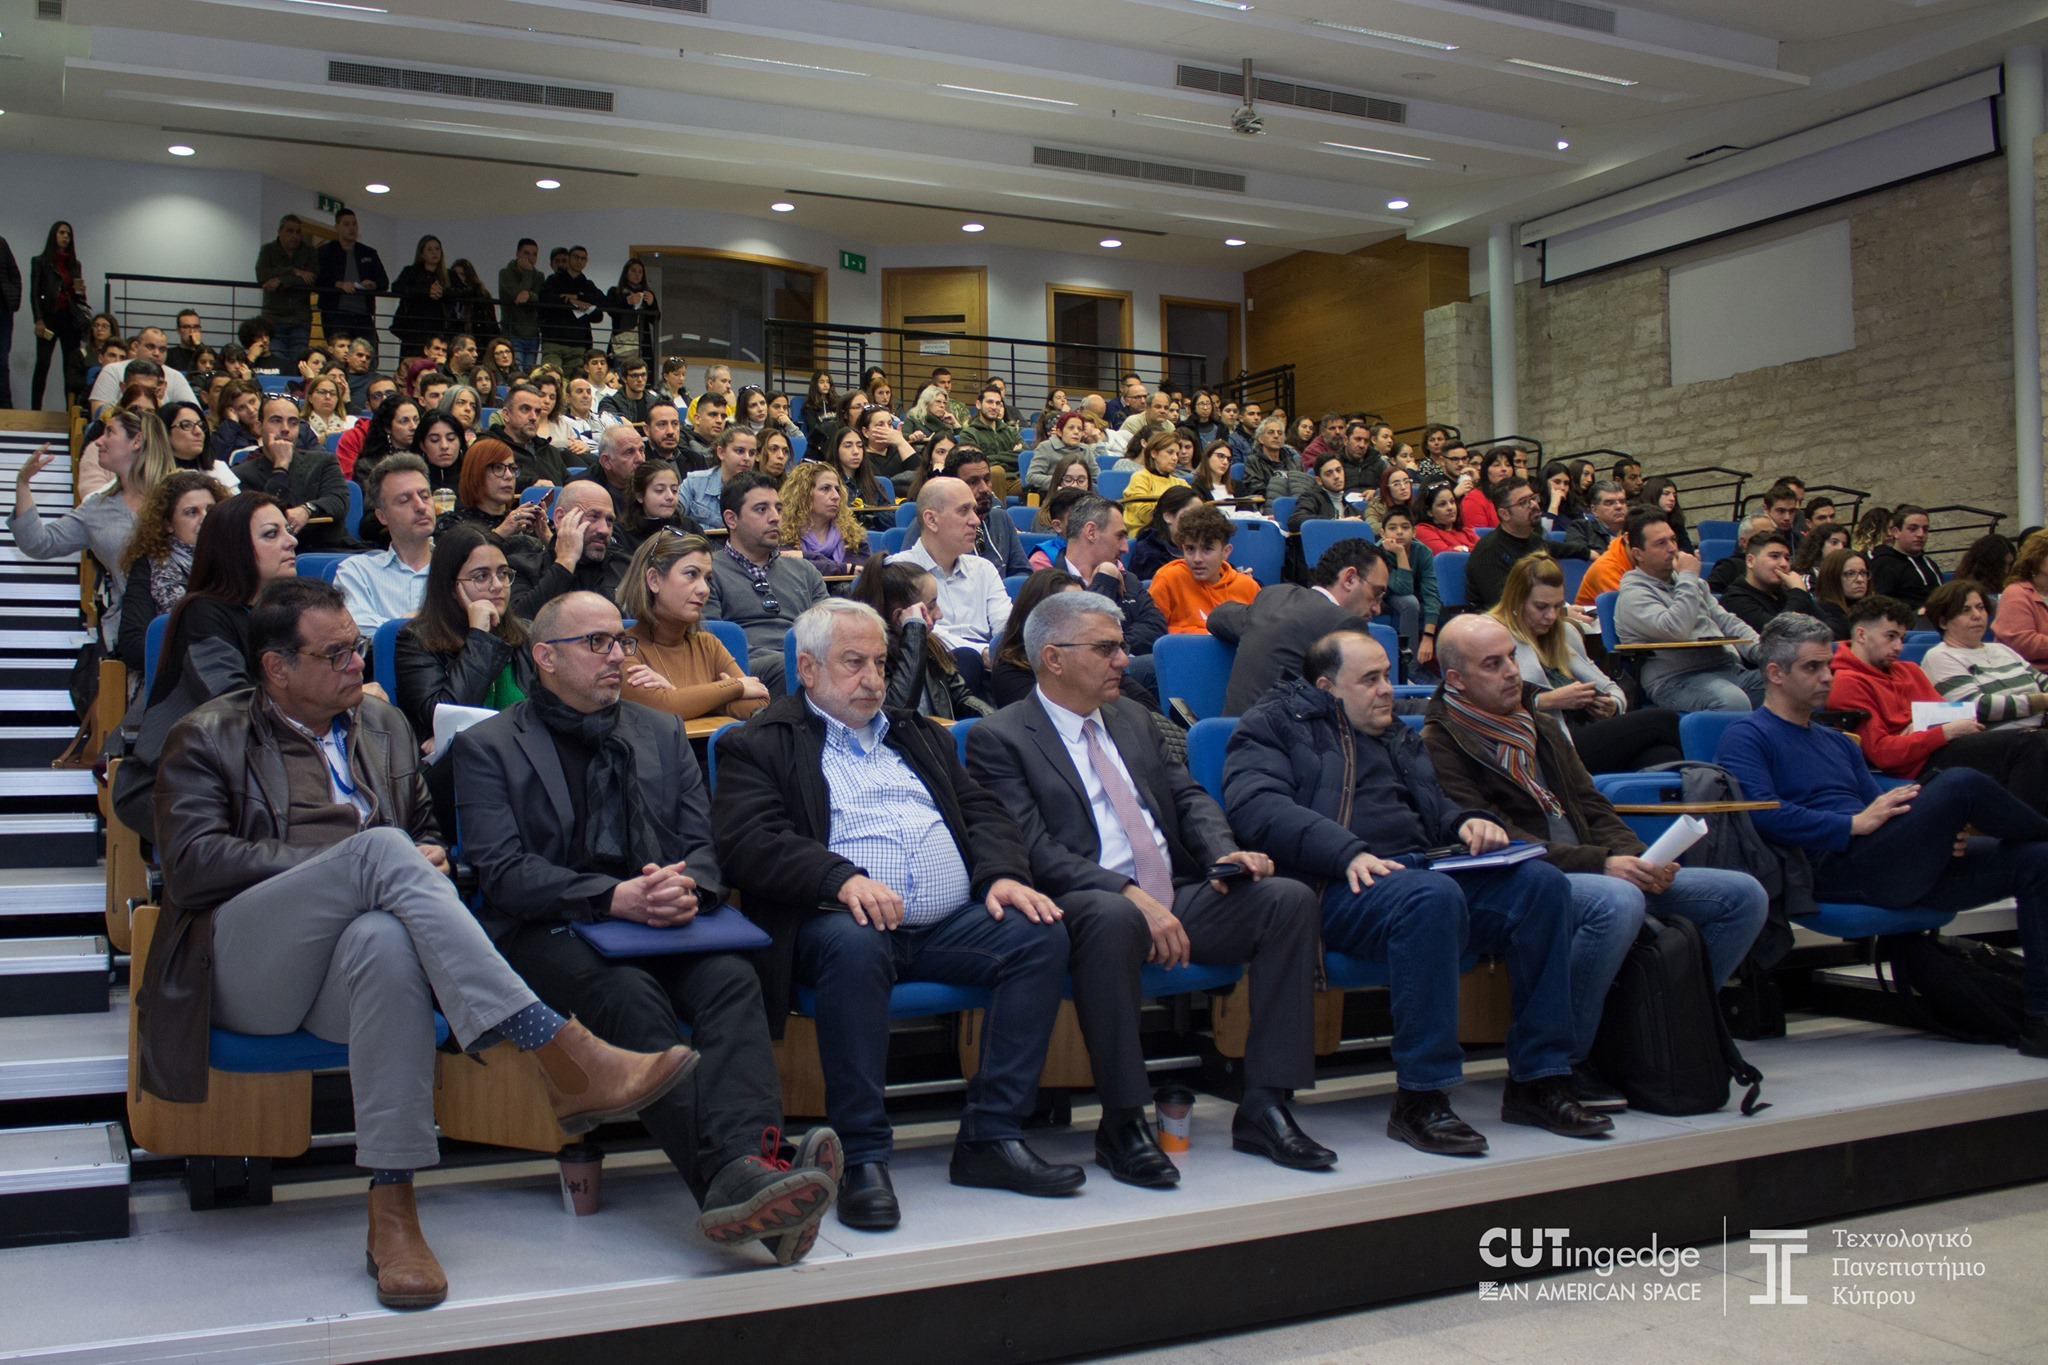 Open Day at the Cyprus University of Technology